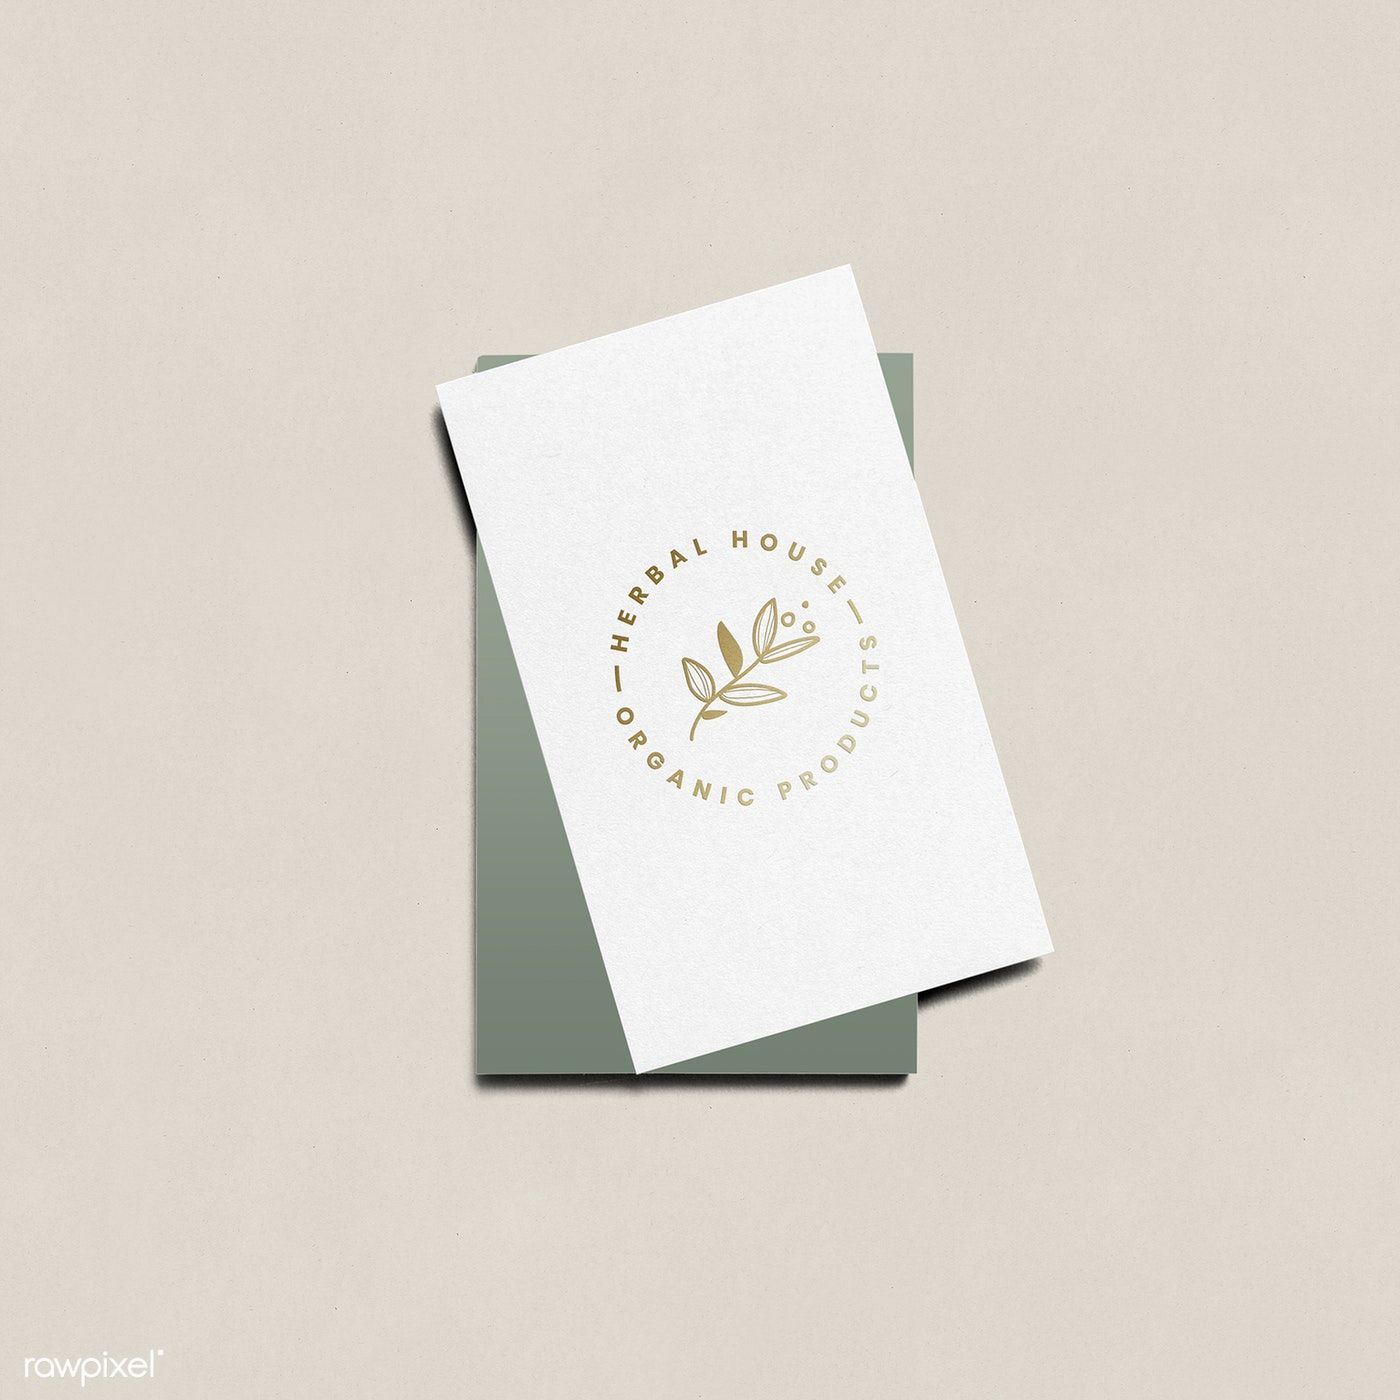 Download Premium Psd Of Business Card And Name Card Mockup 560314 Business Card Mock Up Business Cards Creative Name Card Design